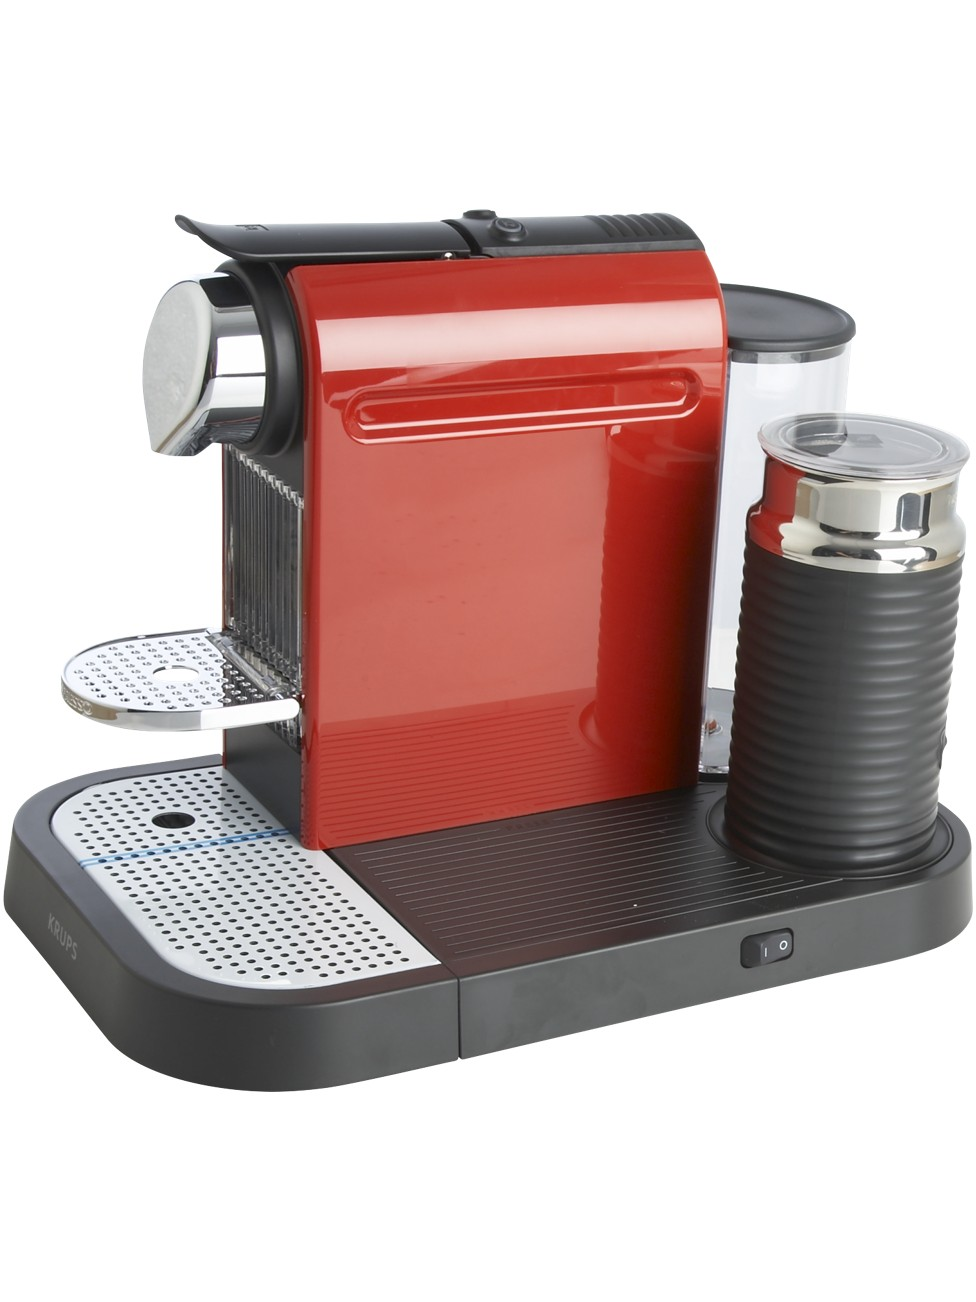 Krups Coffee Maker Red : Krups Red Nespresso Citiz & Milk Coffee Maker - review, compare prices, buy online